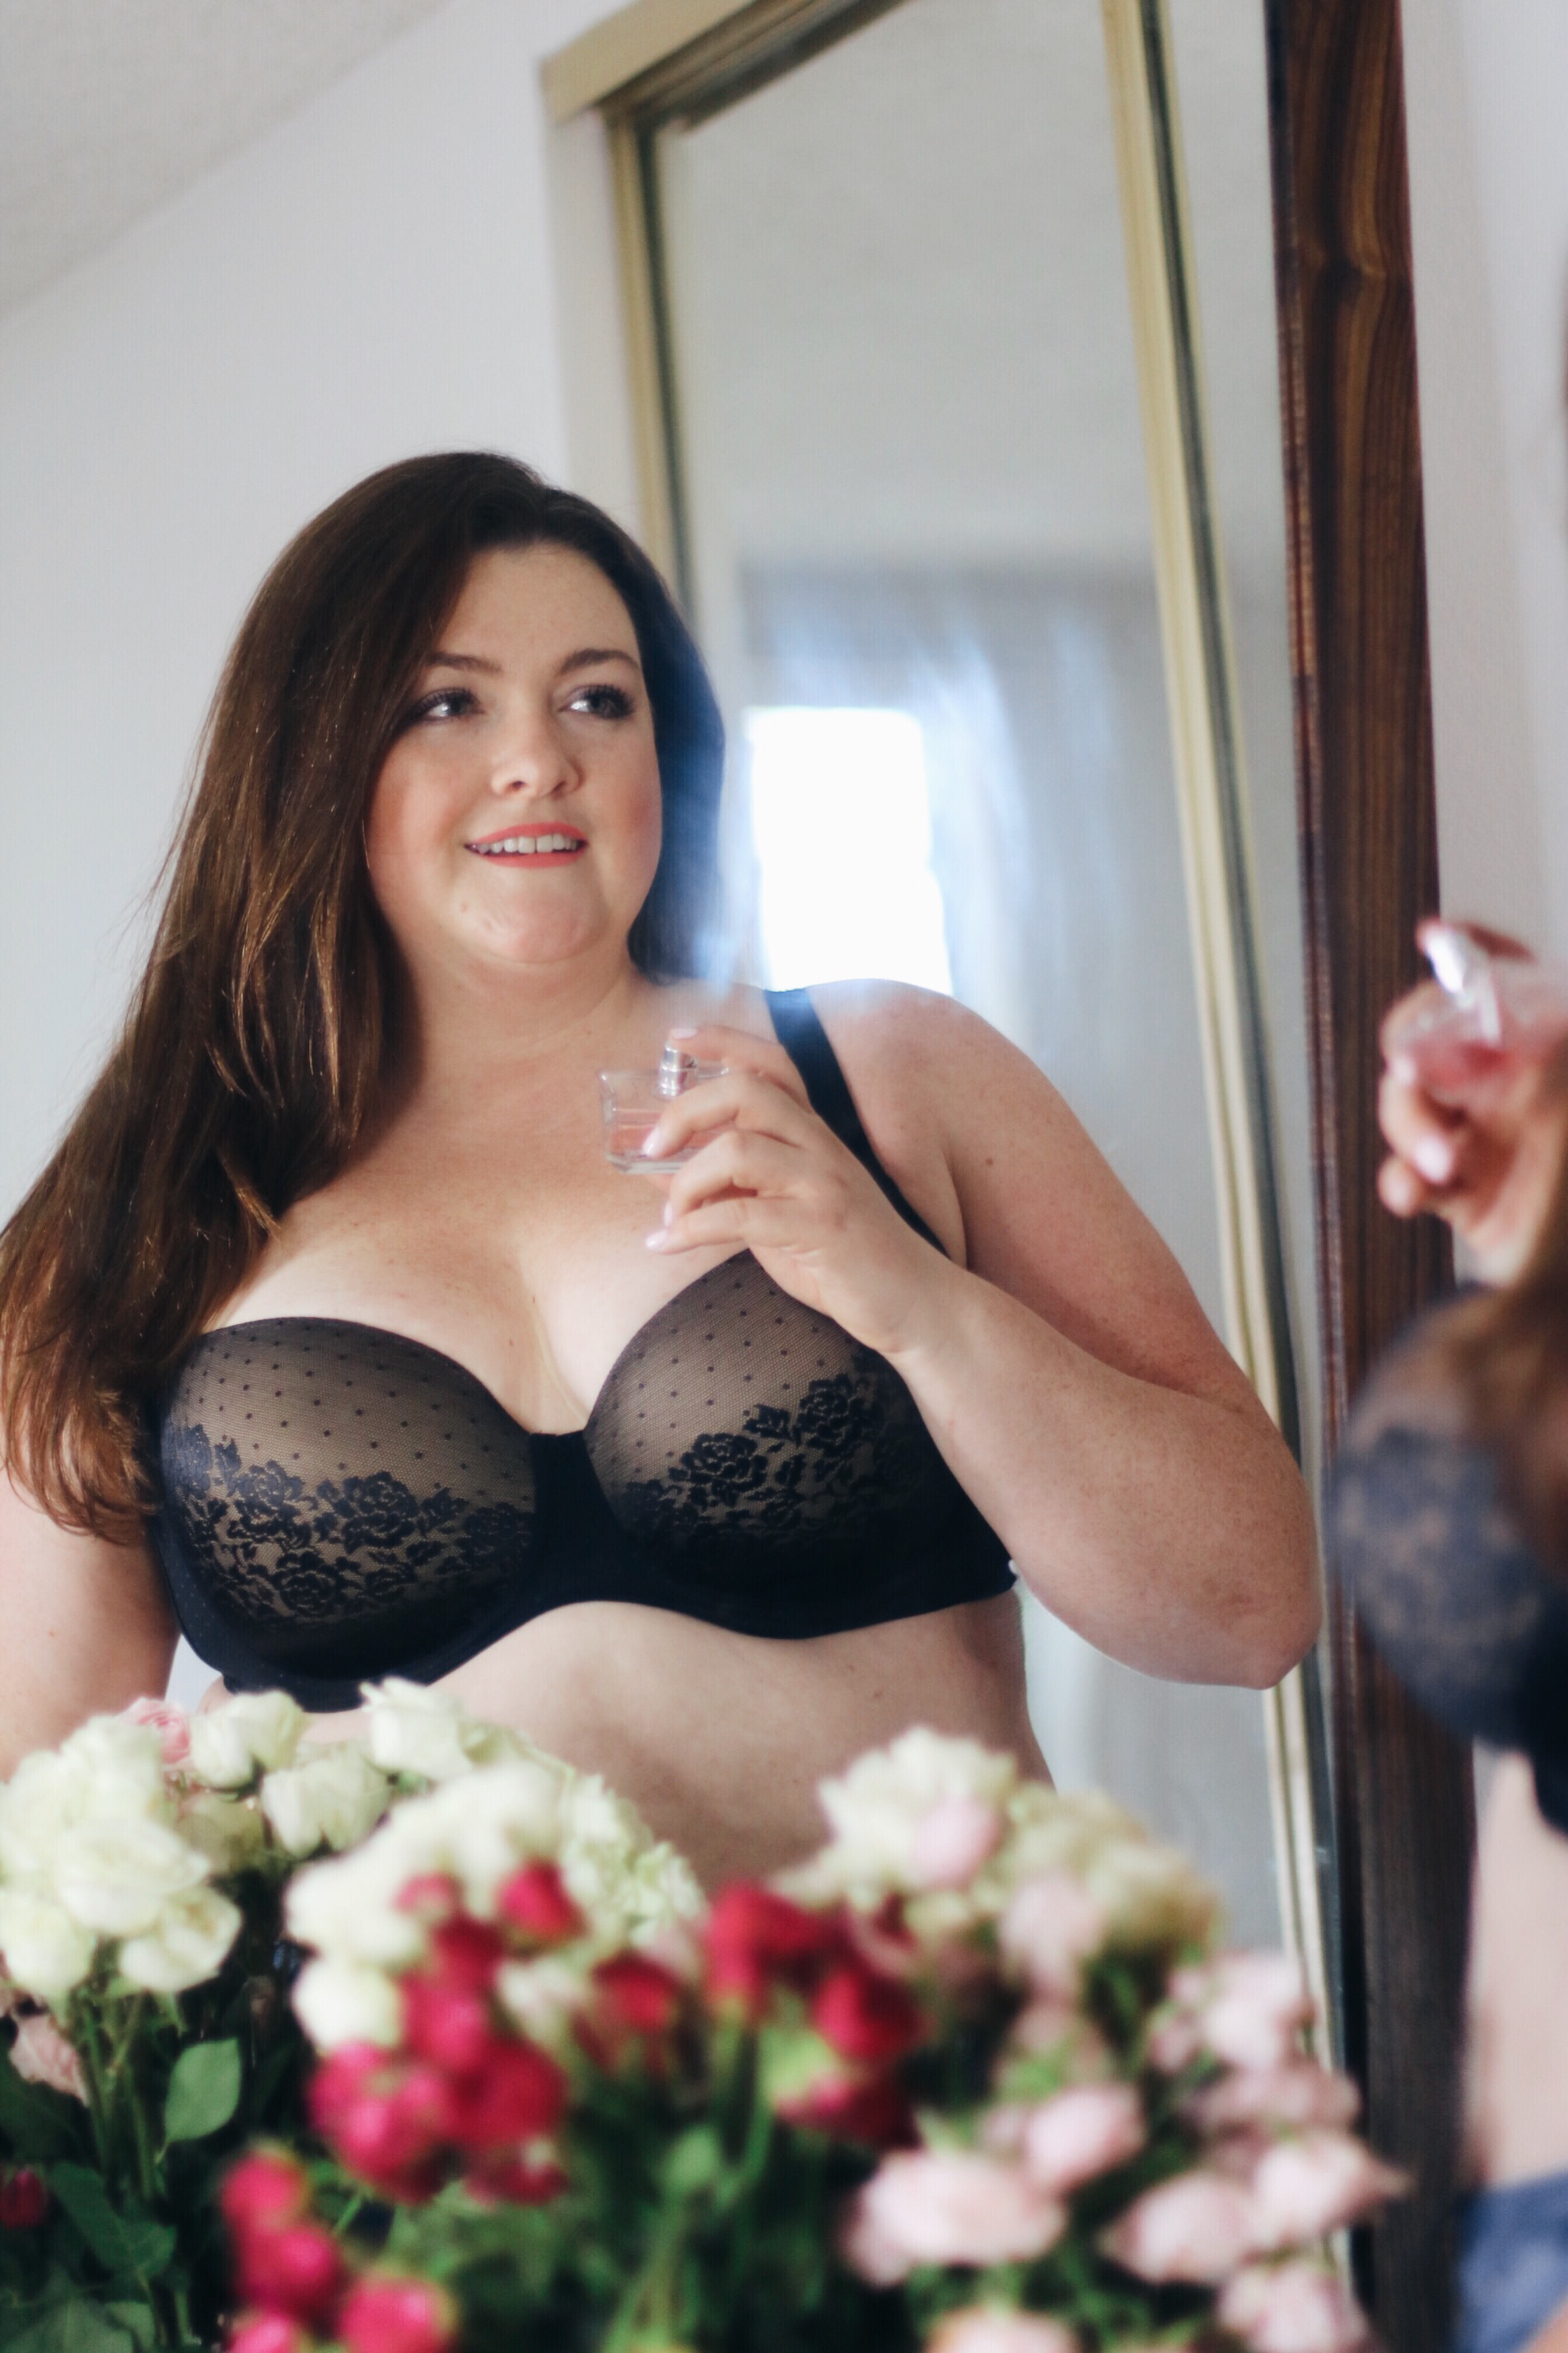 950bf3c8faf4 THE BRA YOU WILL WANT TO SLEEP IN - SOMA INTIMATES ENBLISS COLLECTION -  Lovely In LA - Contemporary Plus-Size Fashion